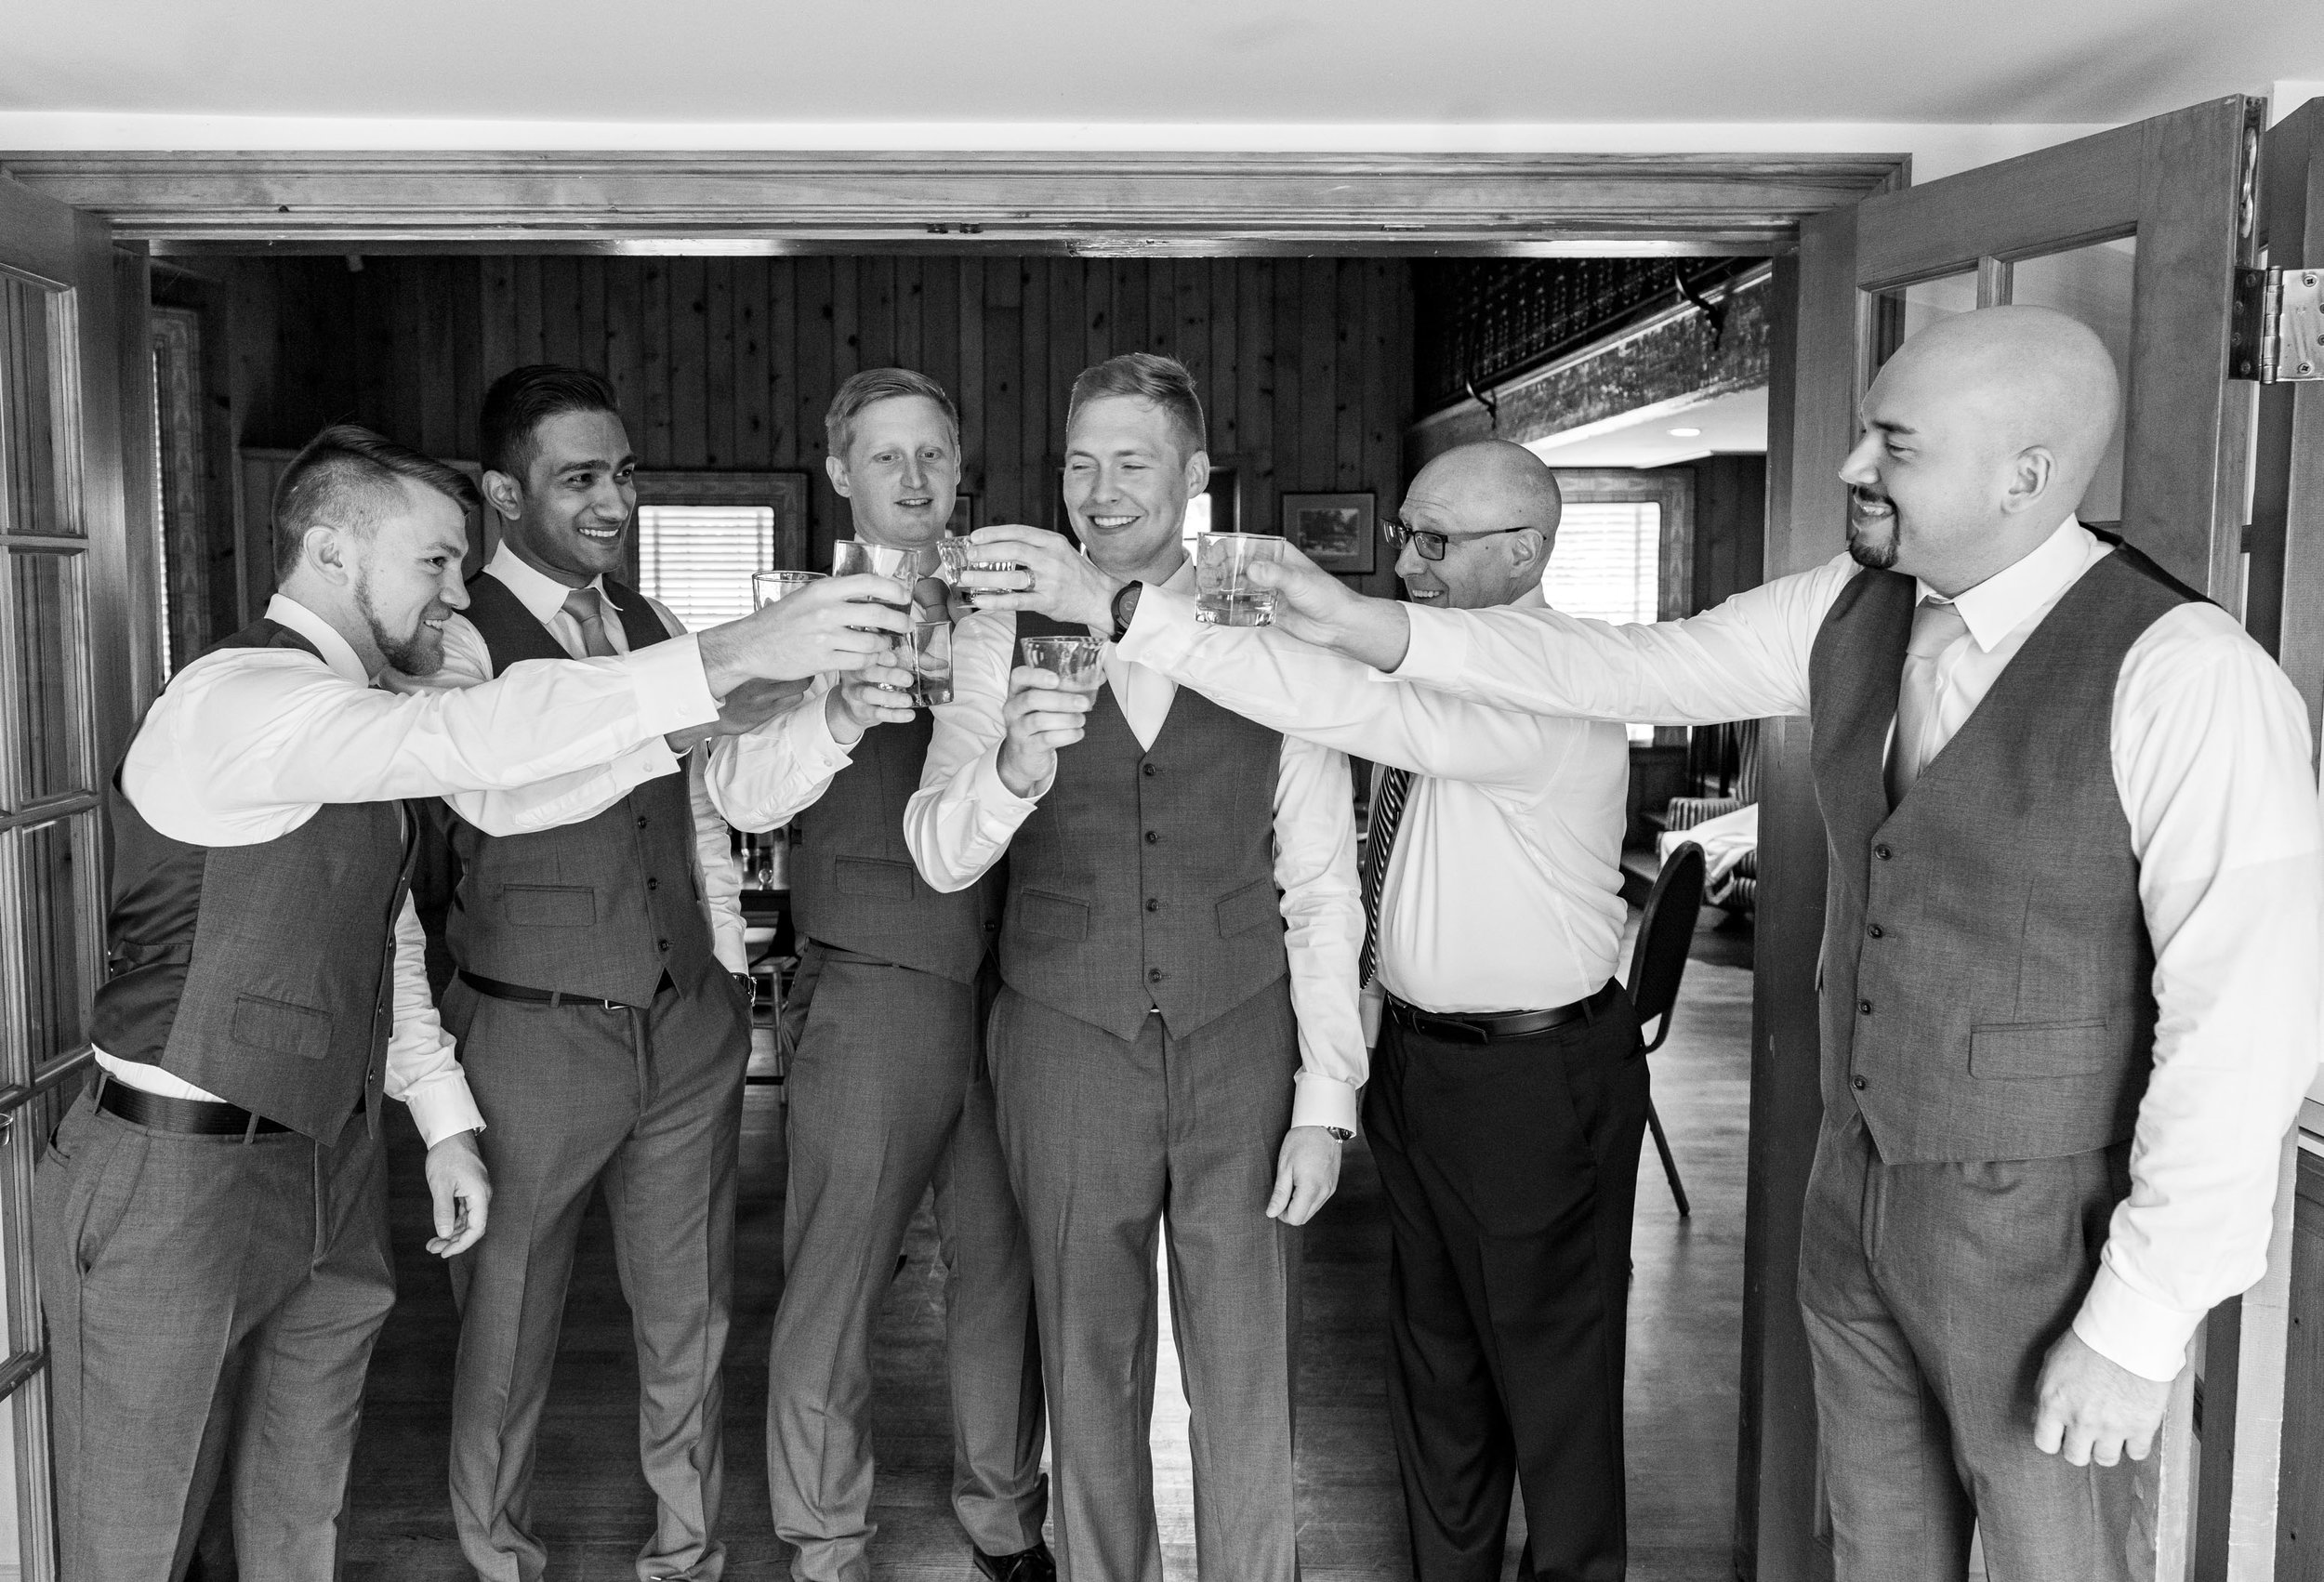 Groom and groomsmen toast in groom's suite at Rockville's Glenview Mansion wedding